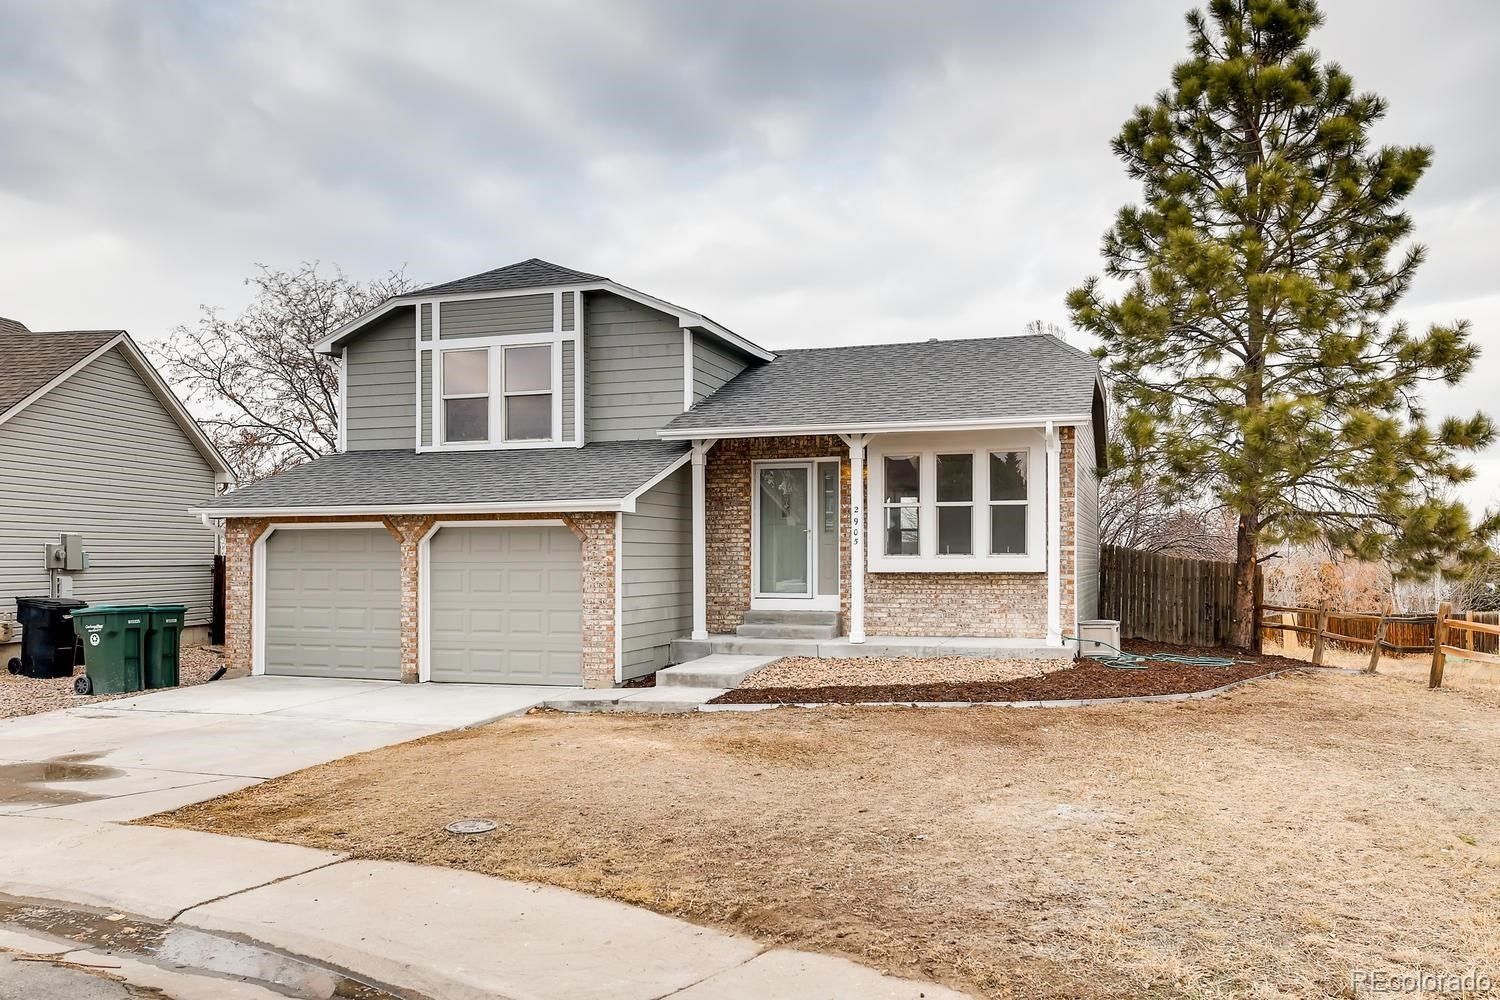 MLS# 2931956 - 1 - 2905 S Andes Way, Aurora, CO 80013